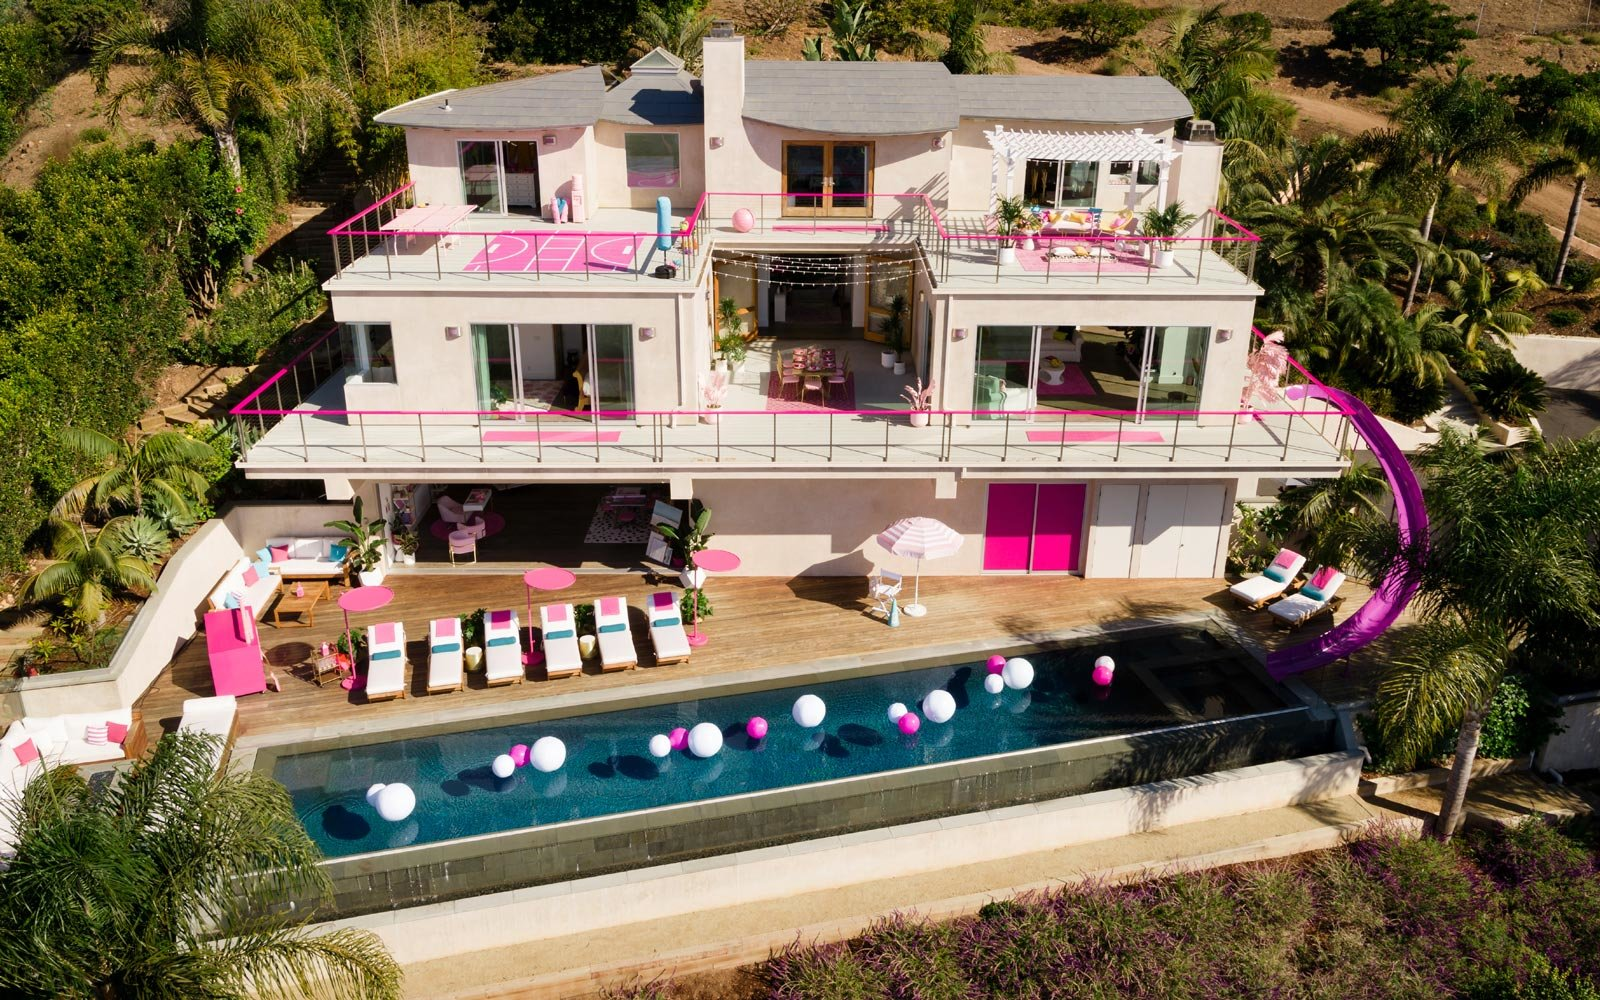 You can actually stay in Barbie's Malibu Dreamhouse thanks to Airbnb